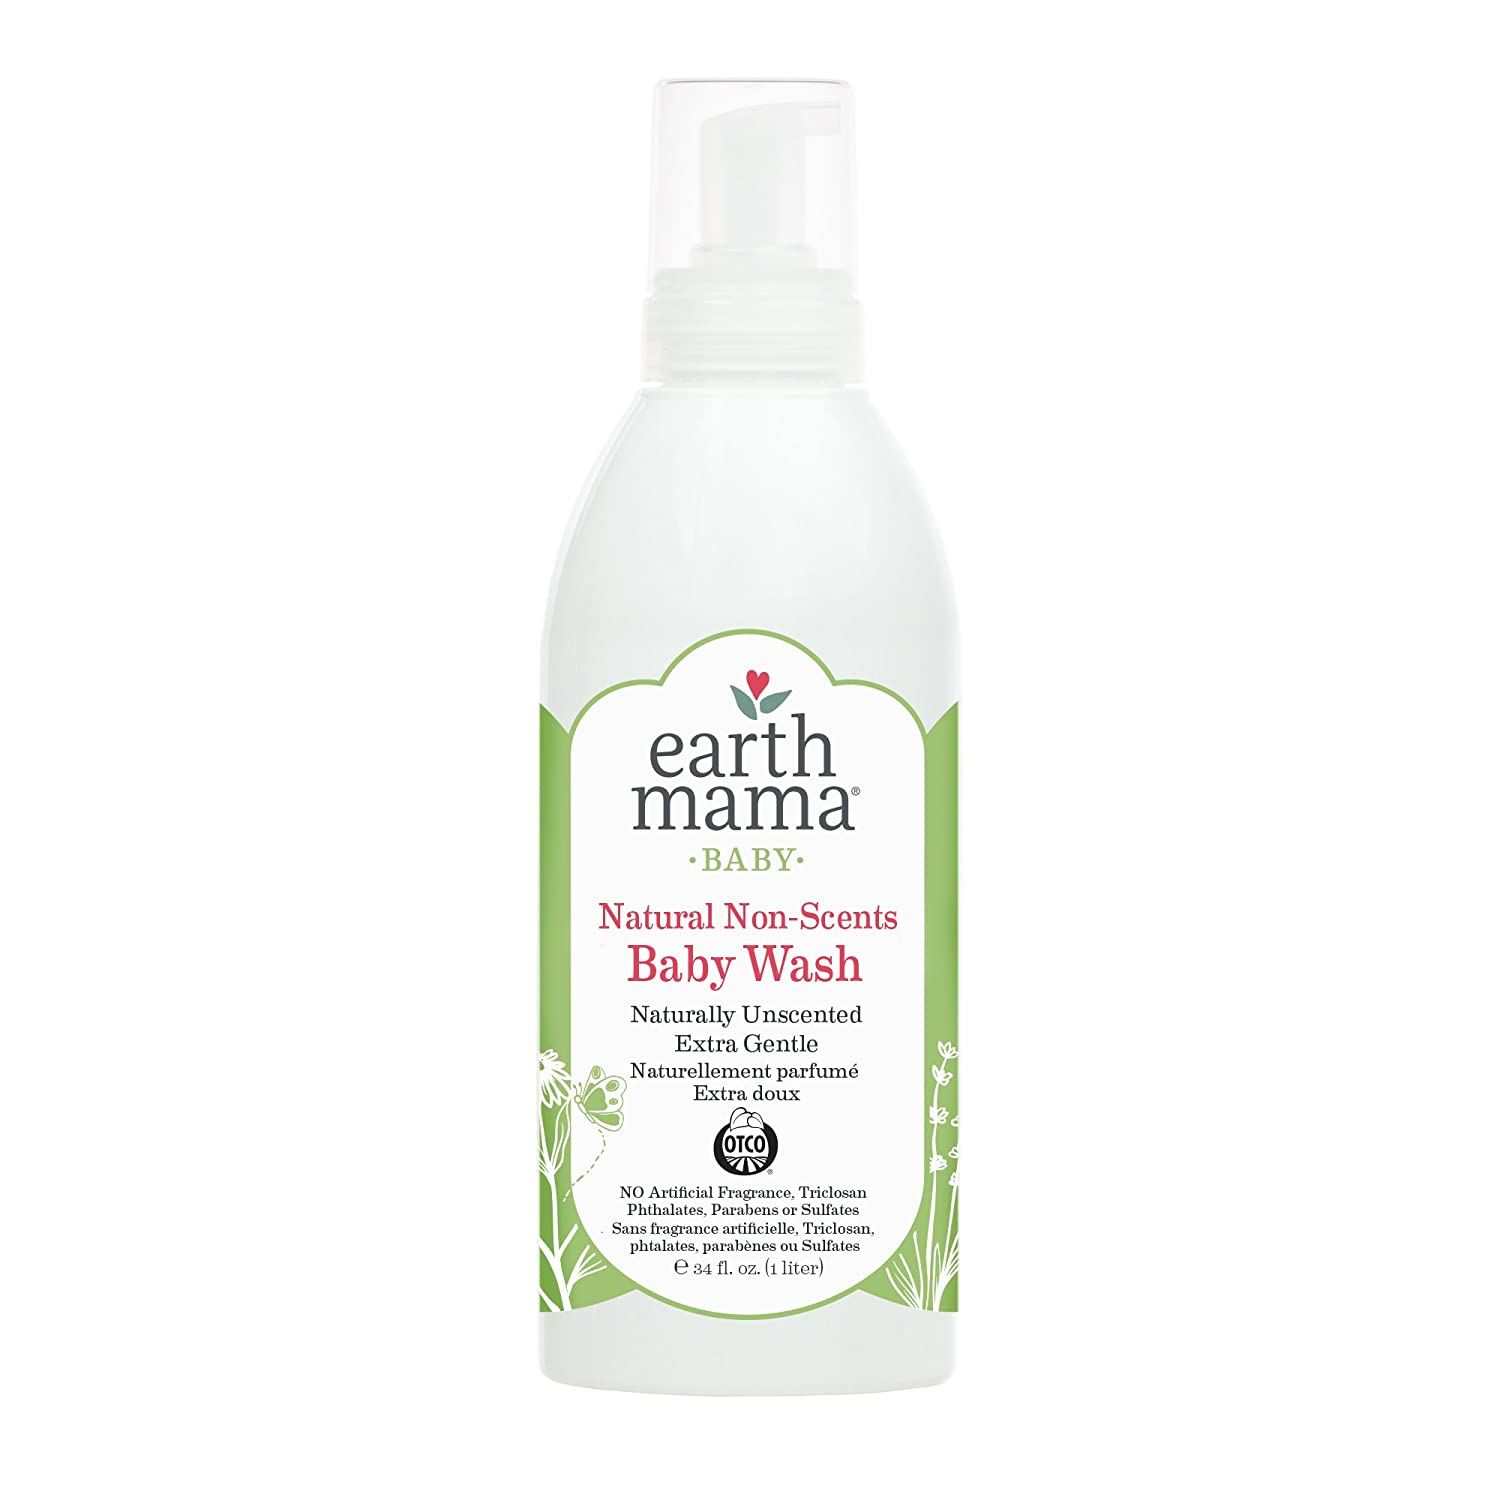 Earth Mama Angel Baby Natural Non-Scents Body Wash and Shampoo-Fragrance Free, 34-Ounce